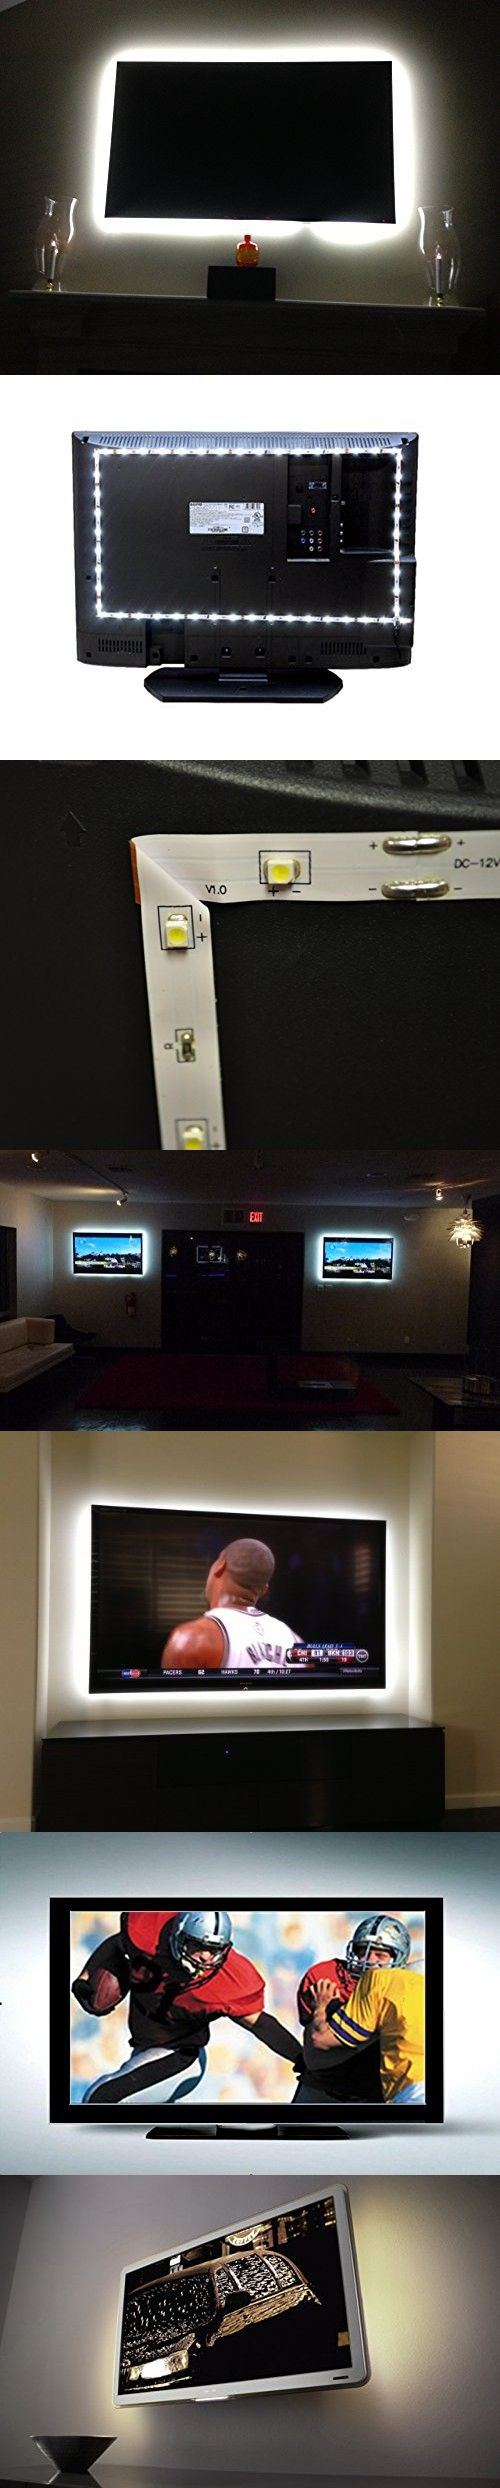 "Inspired LED Home Theater | Accent Light Kit | Ambient Light TV LED Backlight | With USB Switch | Small - 123 inch Flexible LED Strip Light | Fits up to 42"" Flat Screen TVs"